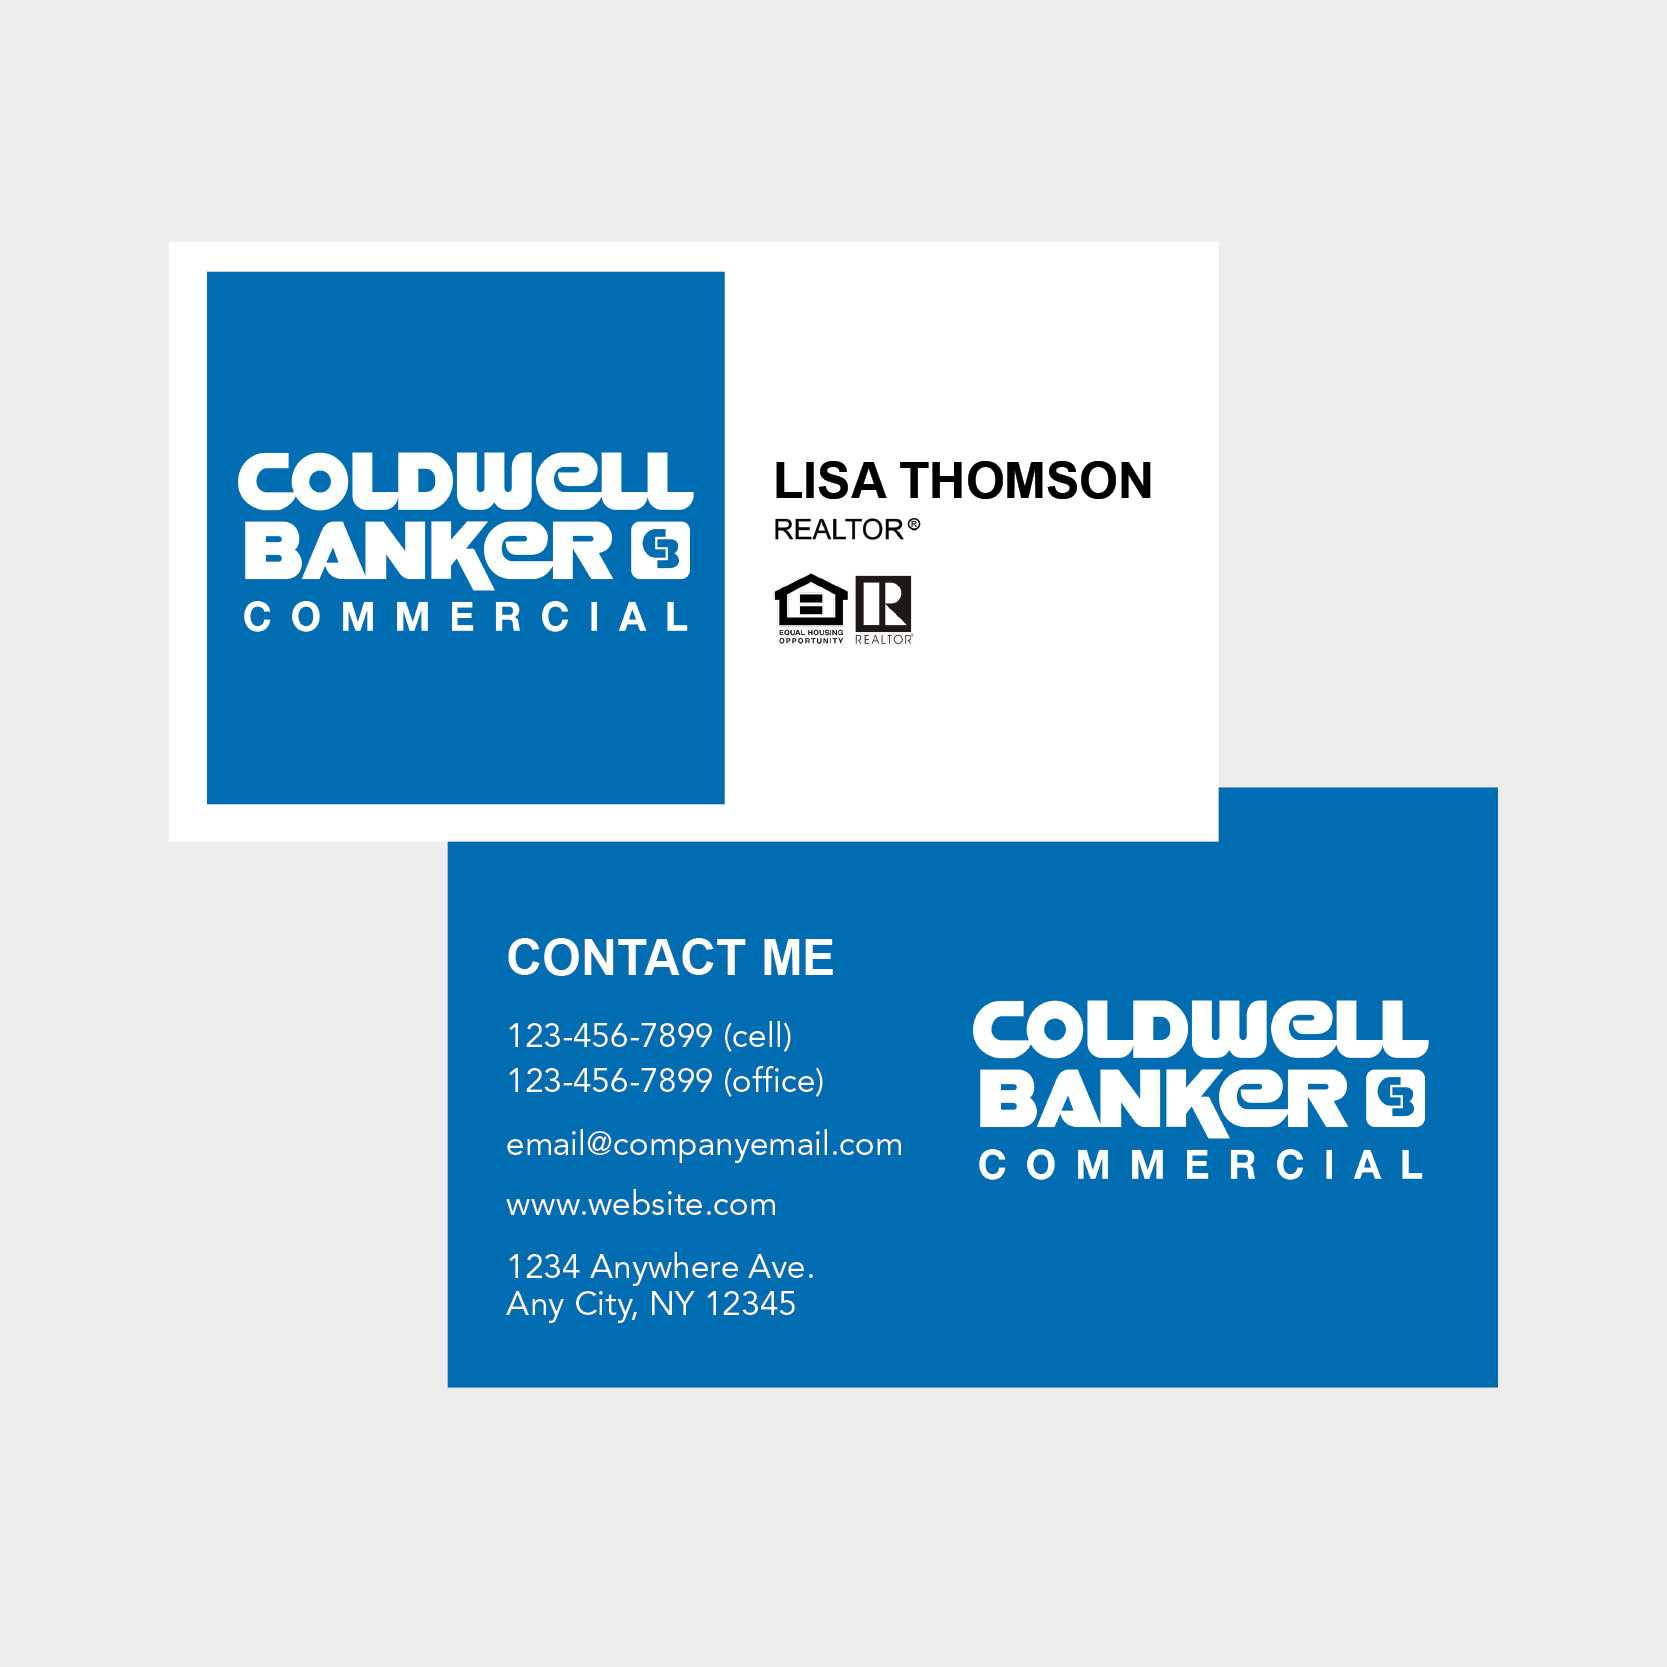 Coldwell Banker Business Card Intended For Coldwell Banker Business Card Template